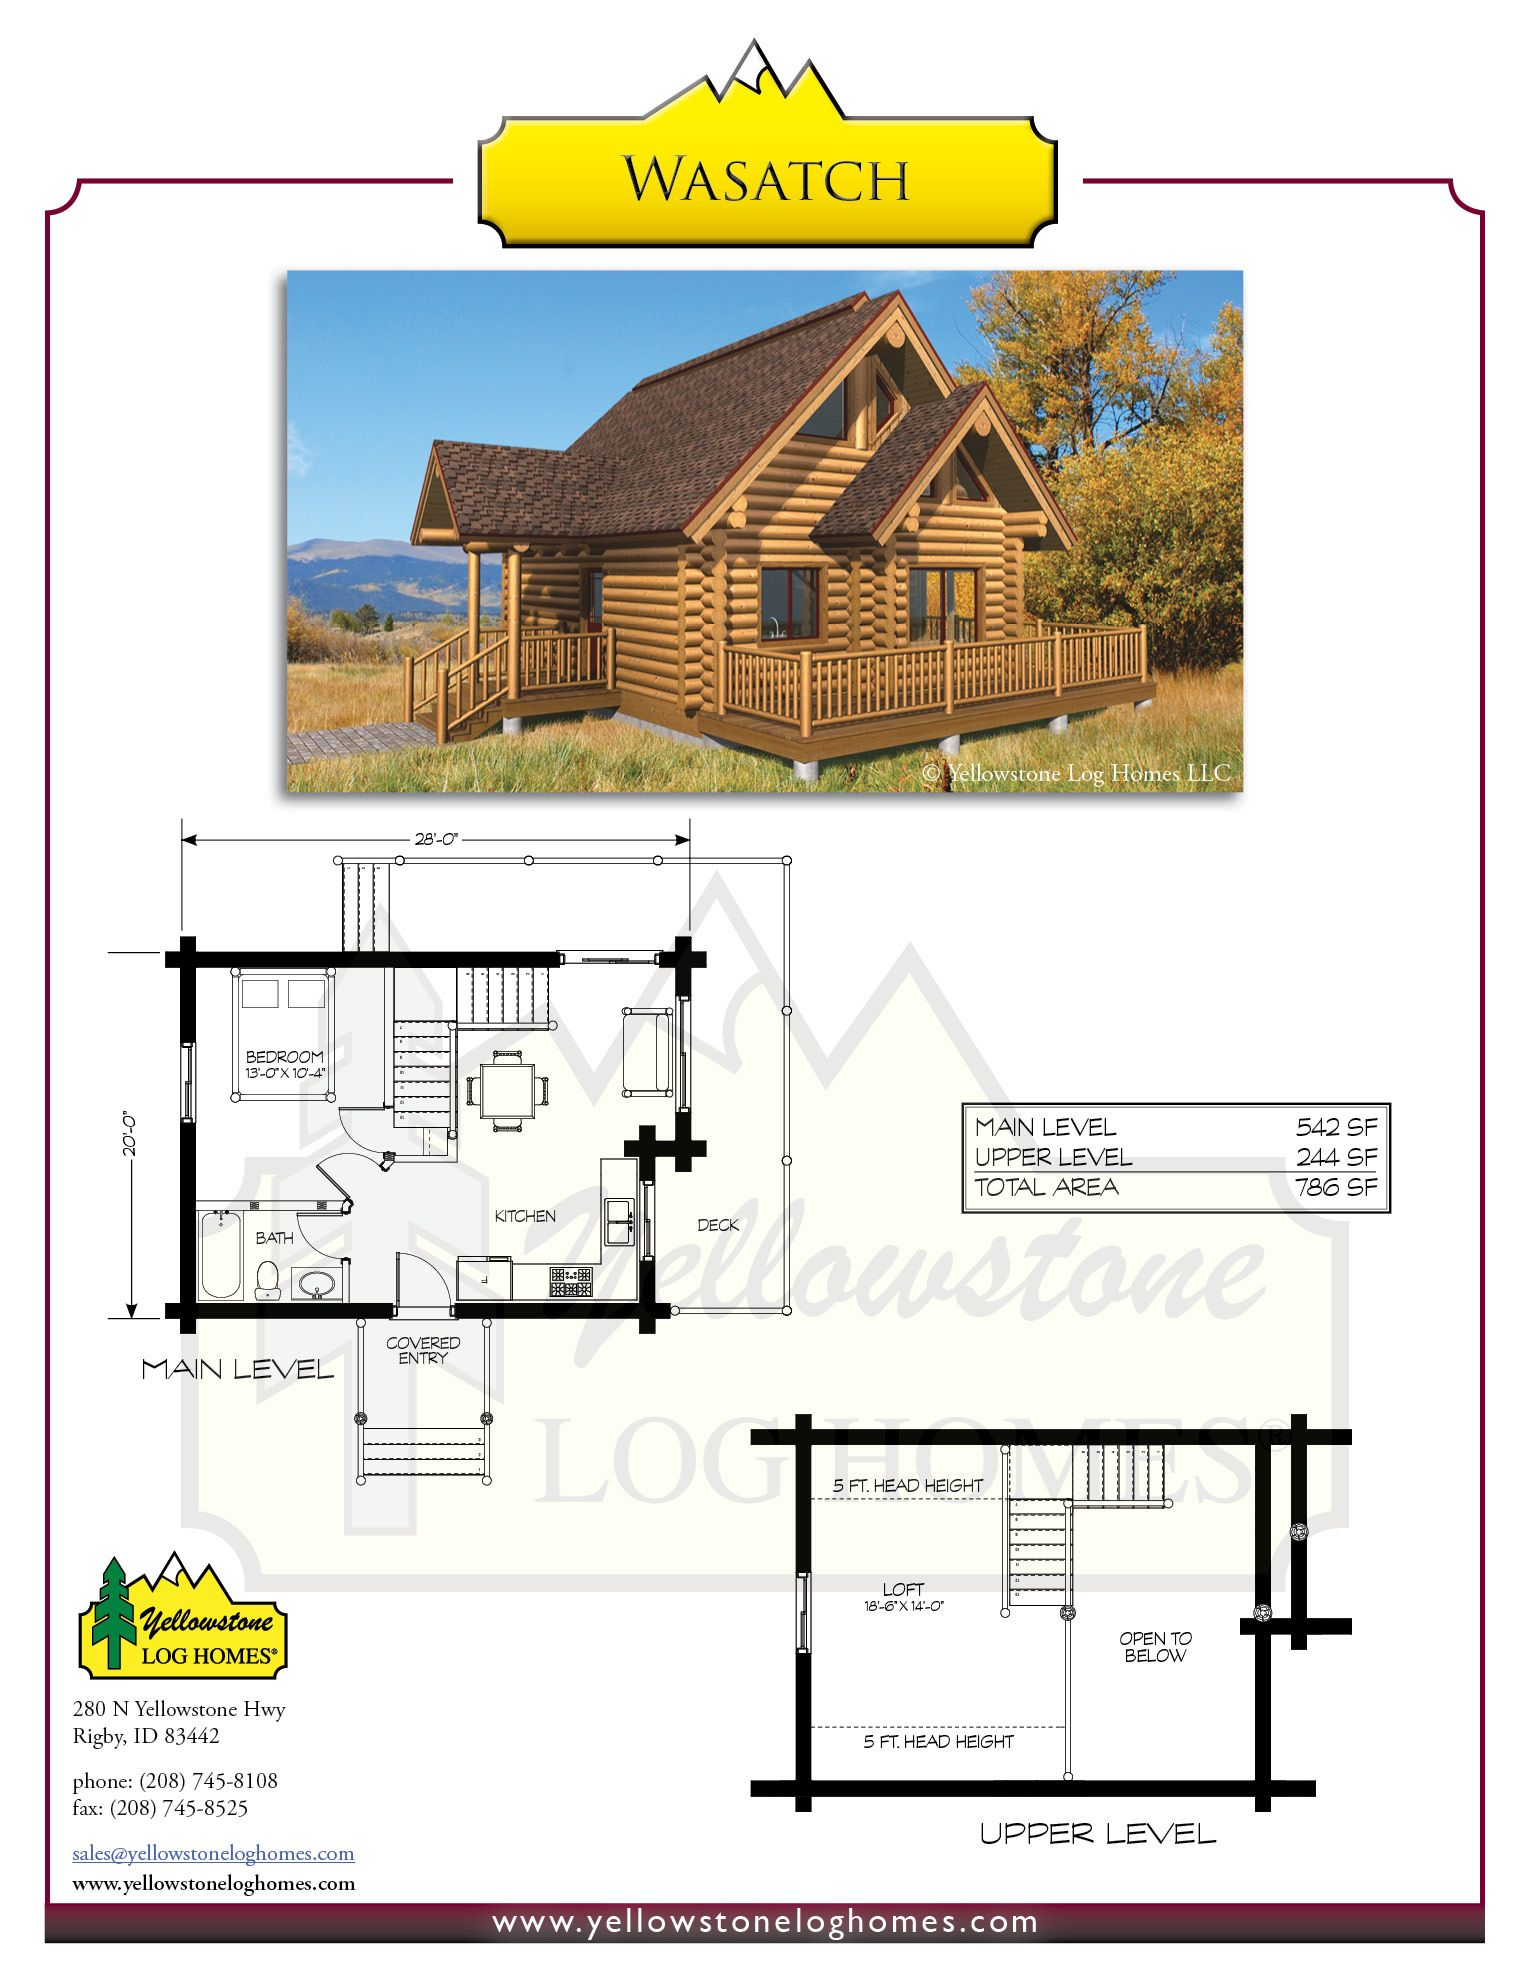 Yellowstone Log Homes | Wasatch Plan | Homestead cabin ideas ...